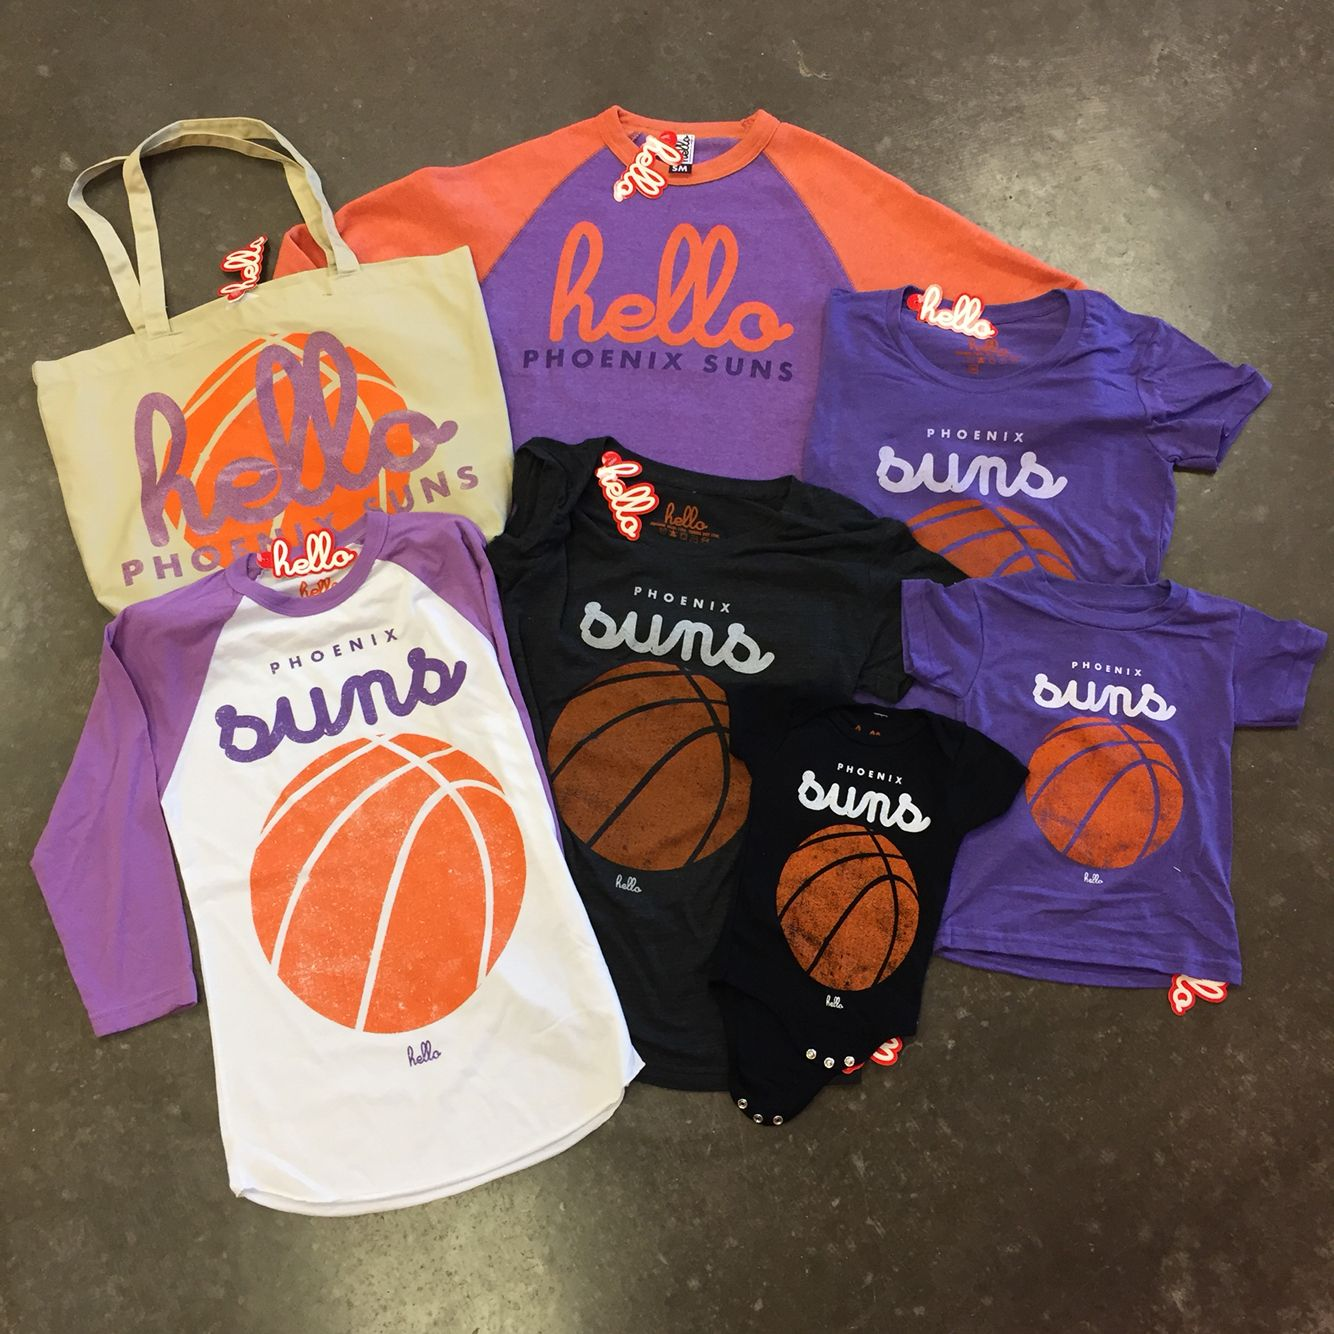 finest selection abd84 b5739 Hello Apparel for the Phoenix Suns available now at the Suns ...